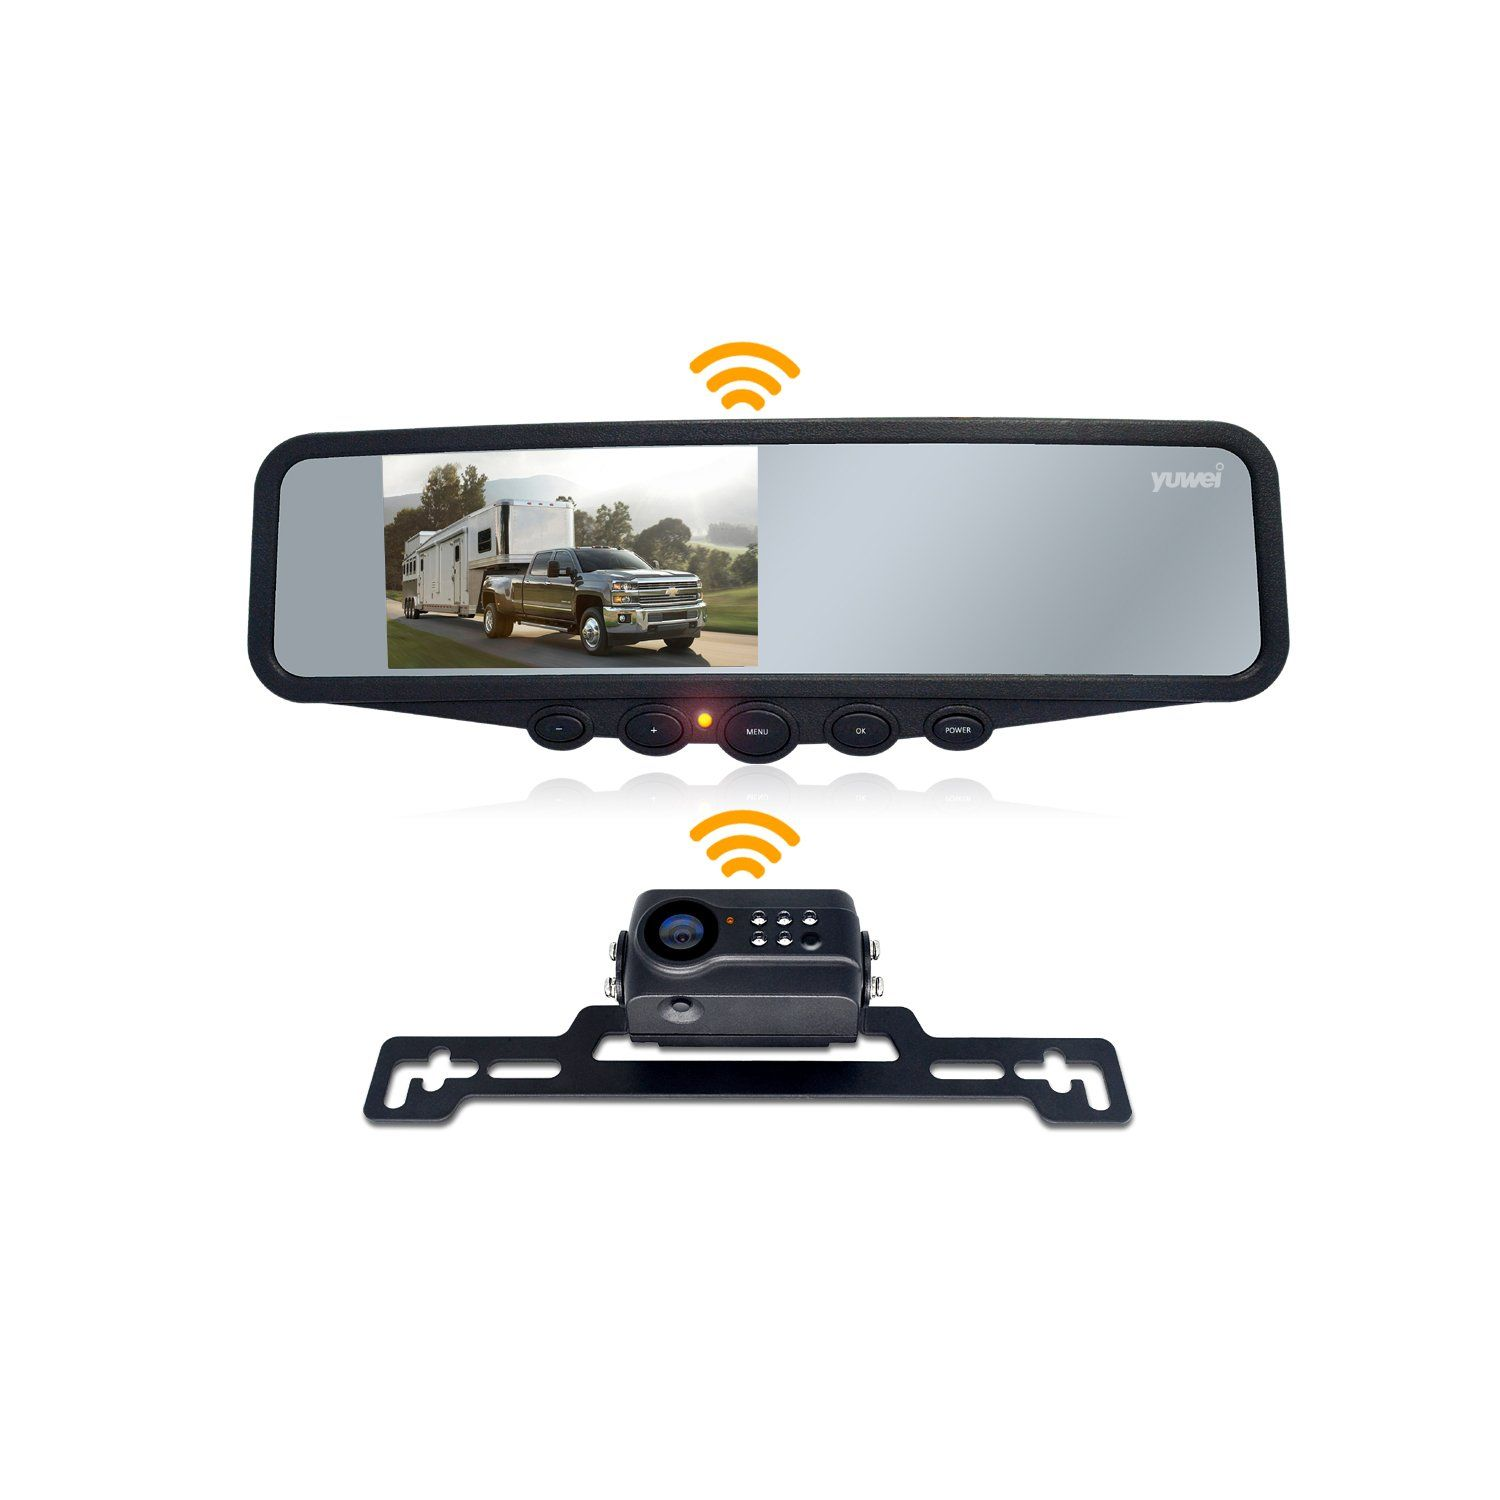 Wireless Backup Camera System, IP69K Waterproof Wireless License ...